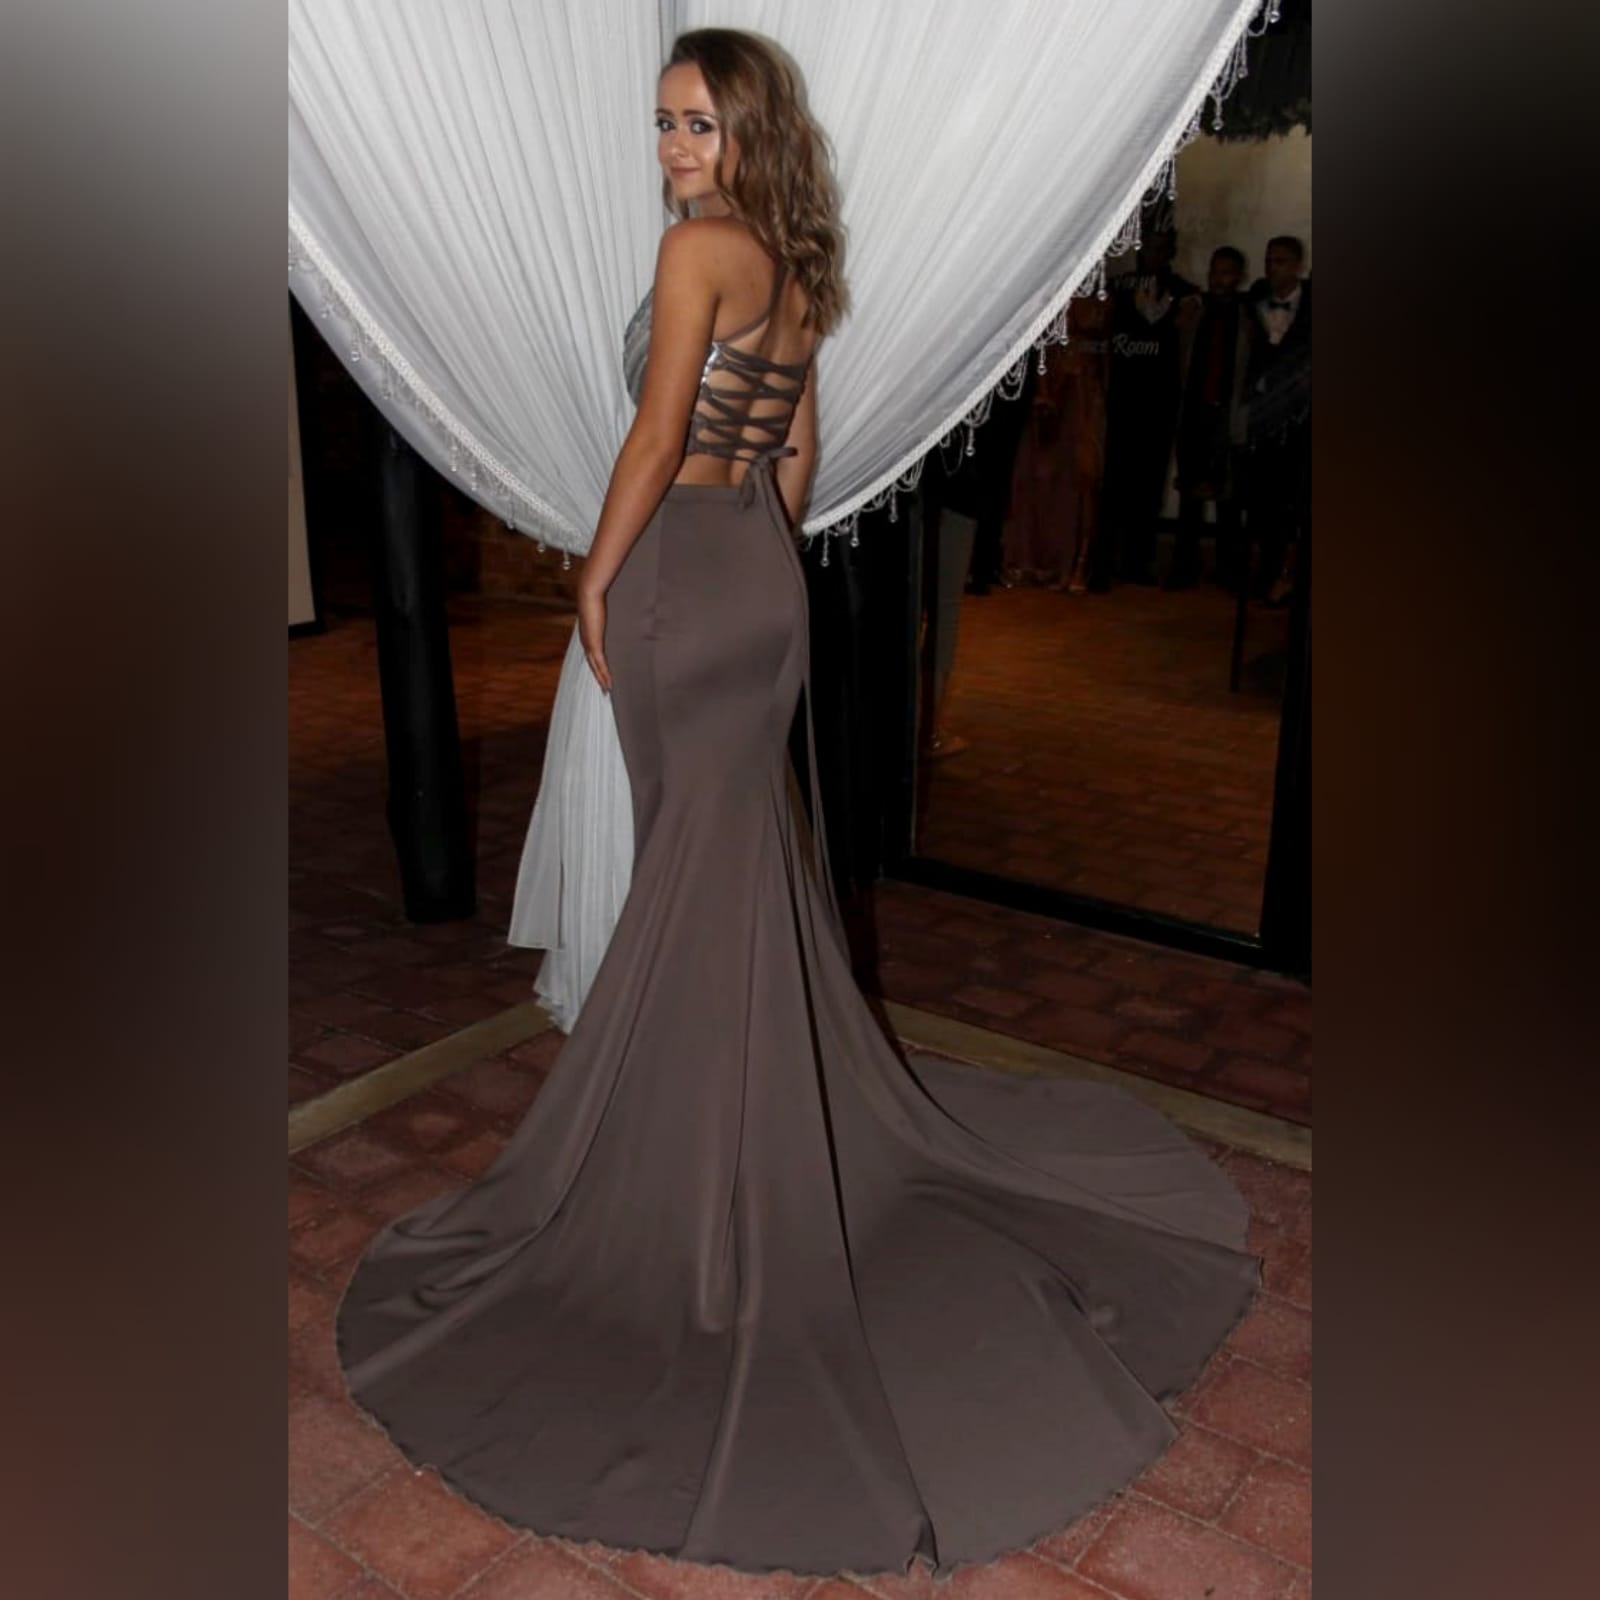 2 piece brown gray prom dress 1 2 piece brown gray prom dress. Skirt as a soft mermaid. Top with an open lace up back. Bust detailed with sequins. With a long train.